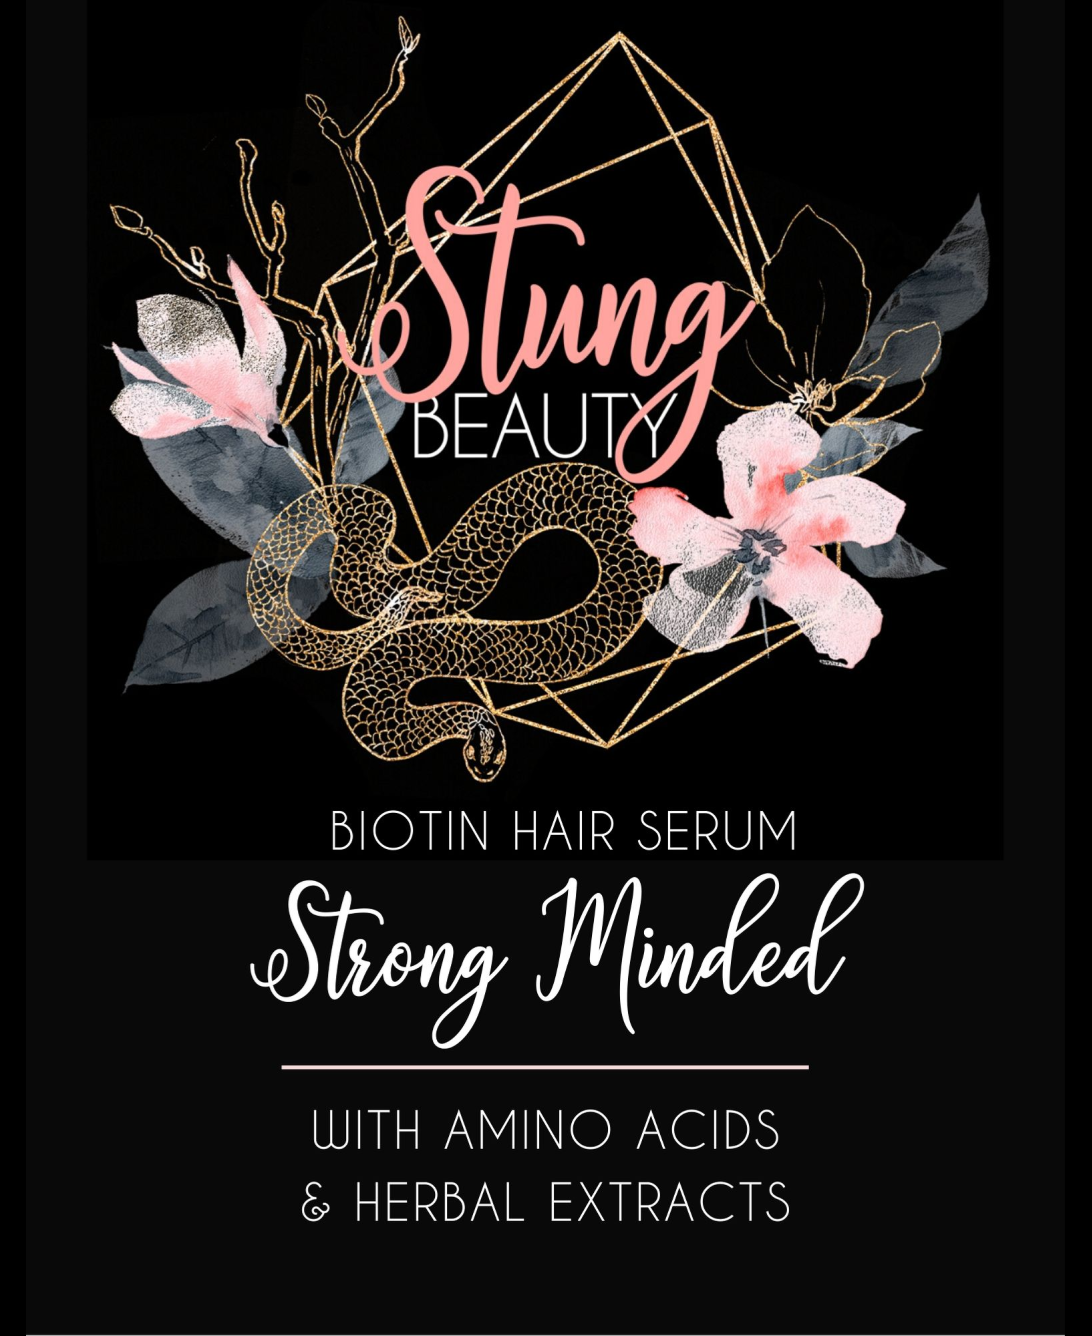 Strong Minded Biotin Hair Serum